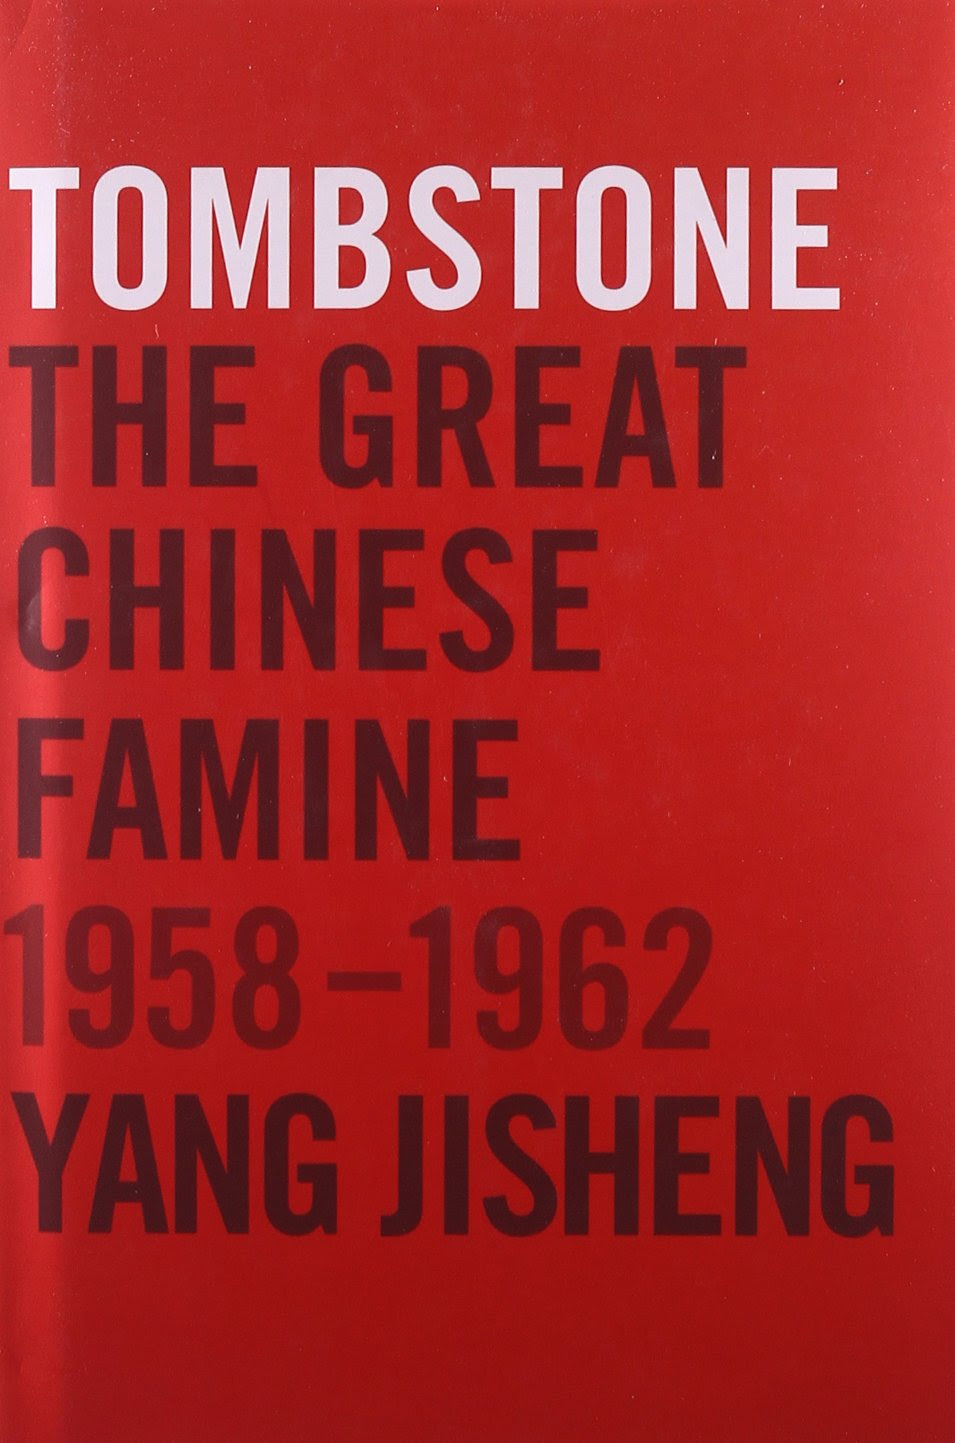 http://www.amazon.com/Tombstone-Great-Chinese-Famine-1958-1962/dp/0374277931